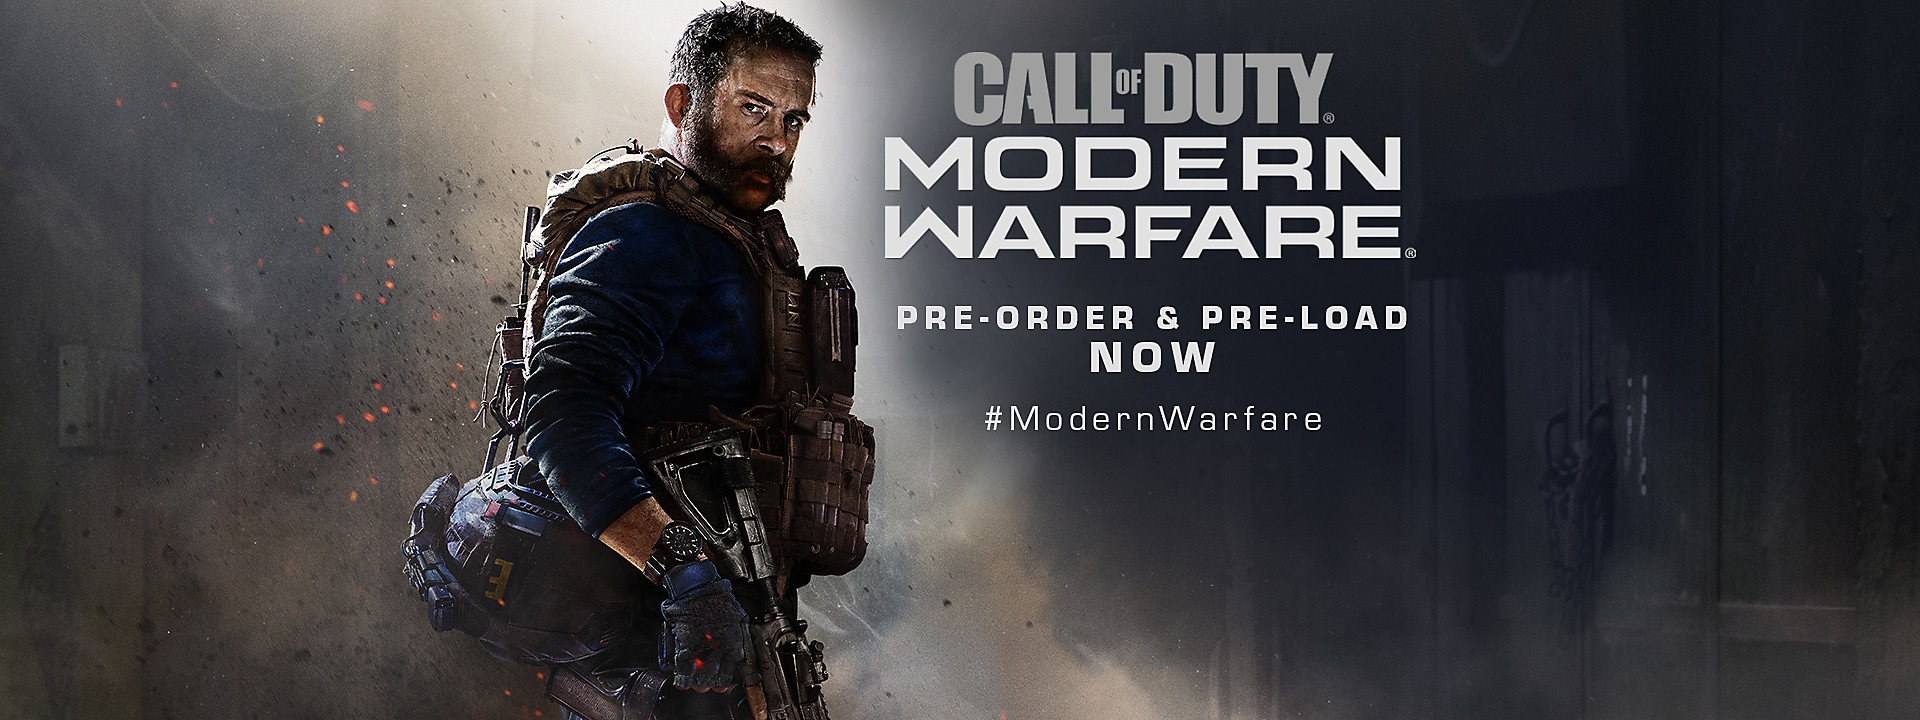 Call of Duty: Modern Warfare - Pre-Load Available Now